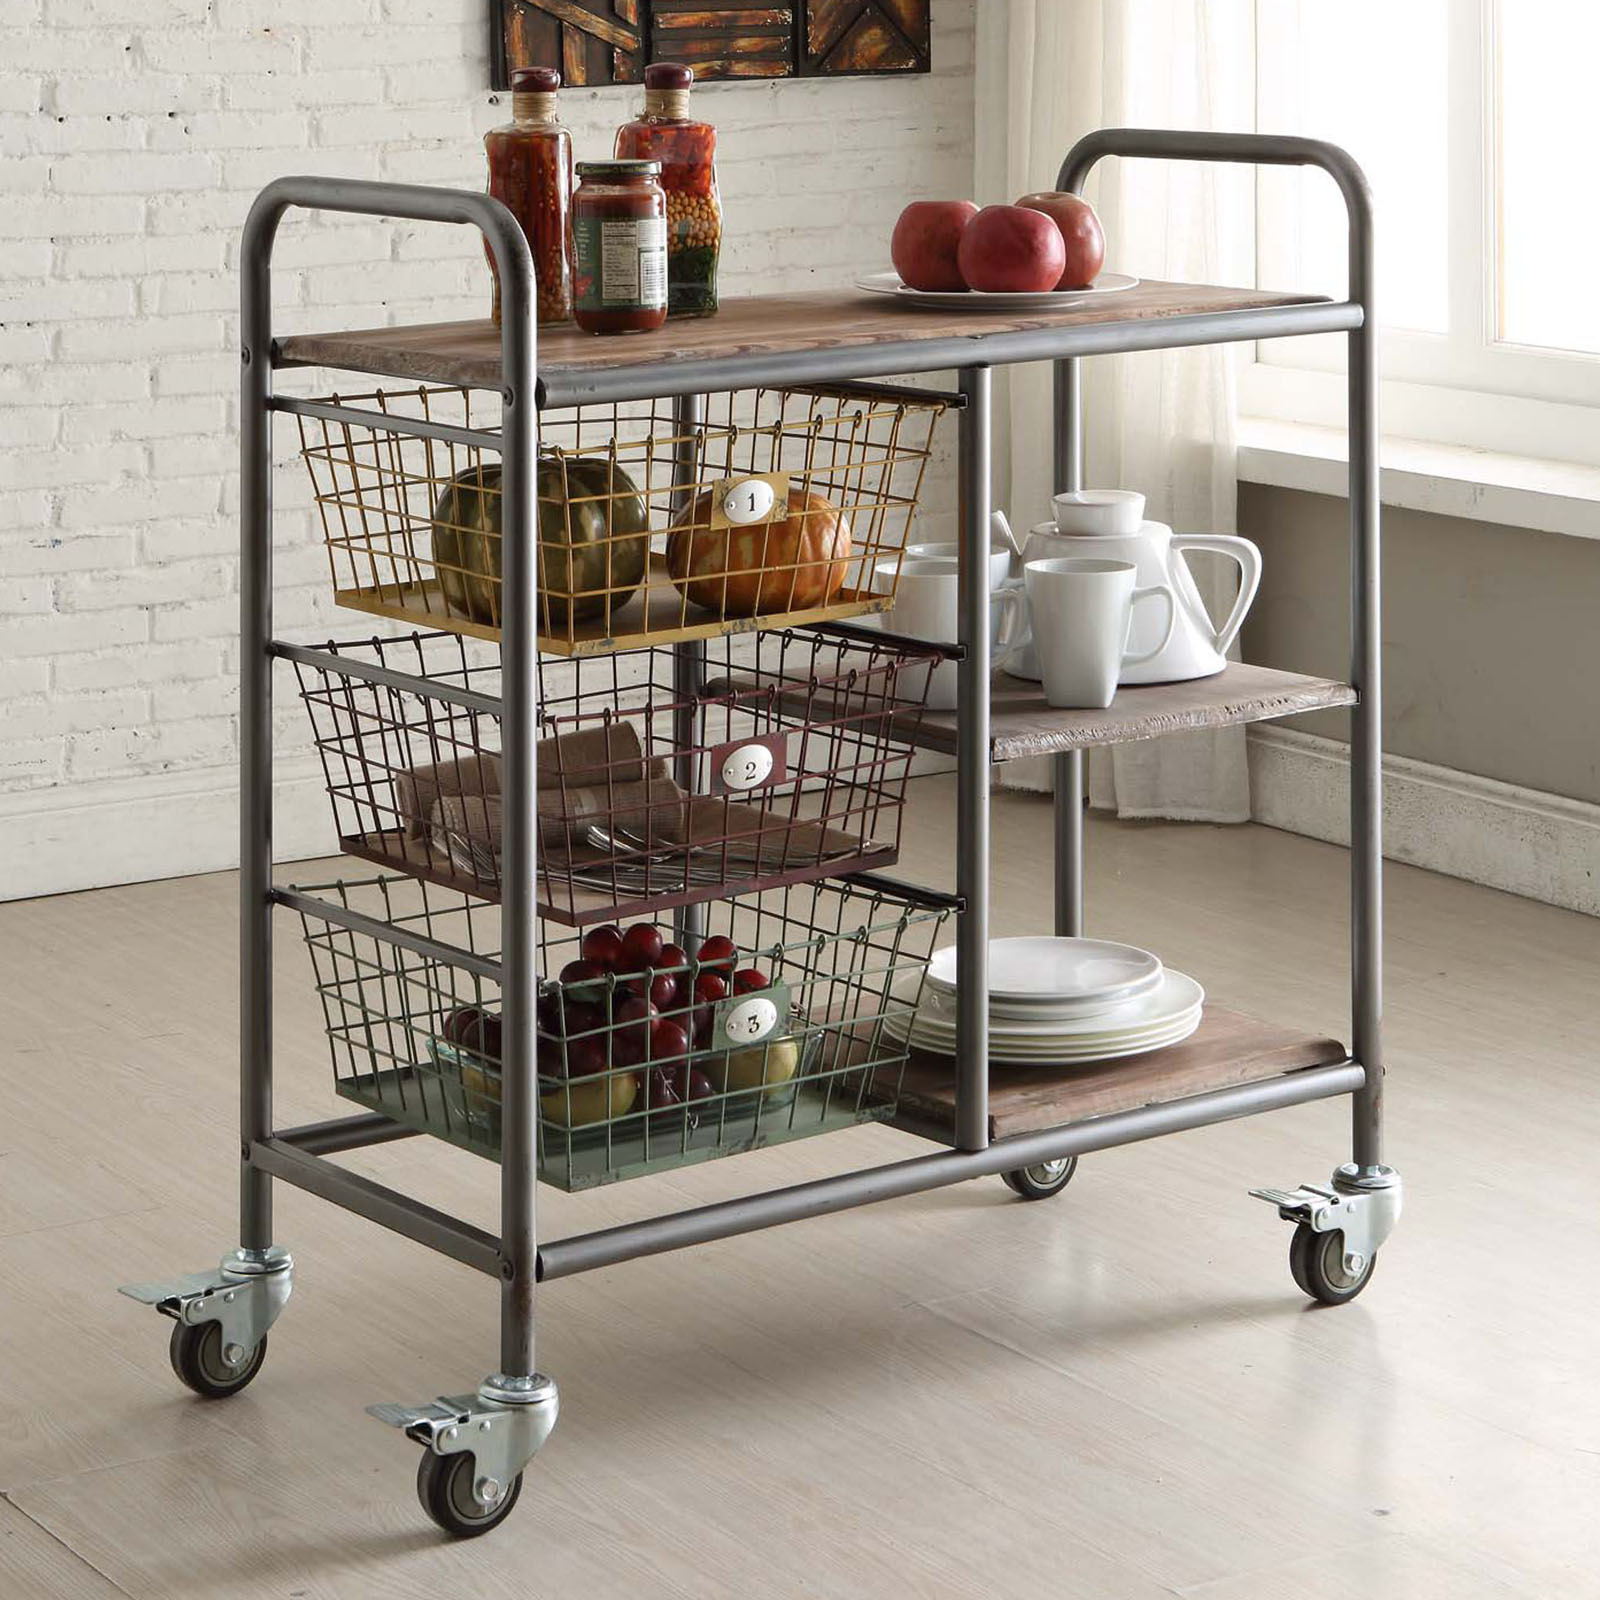 4d concepts urban collection kitchen trolley serving for Kitchen trolley design